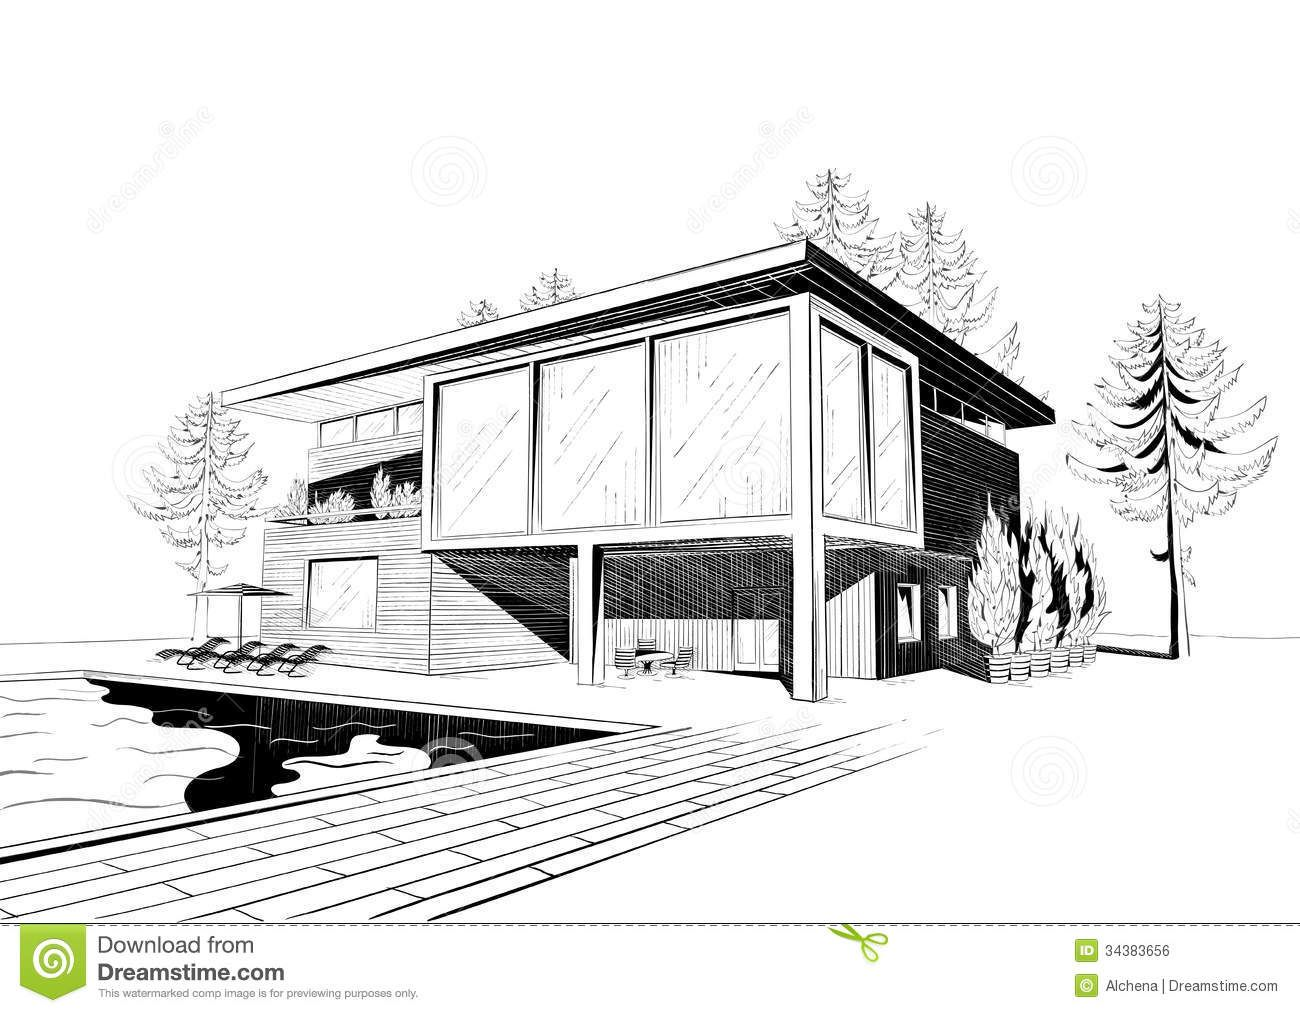 Architecture house sketch new architecture sketches for House drawing easy